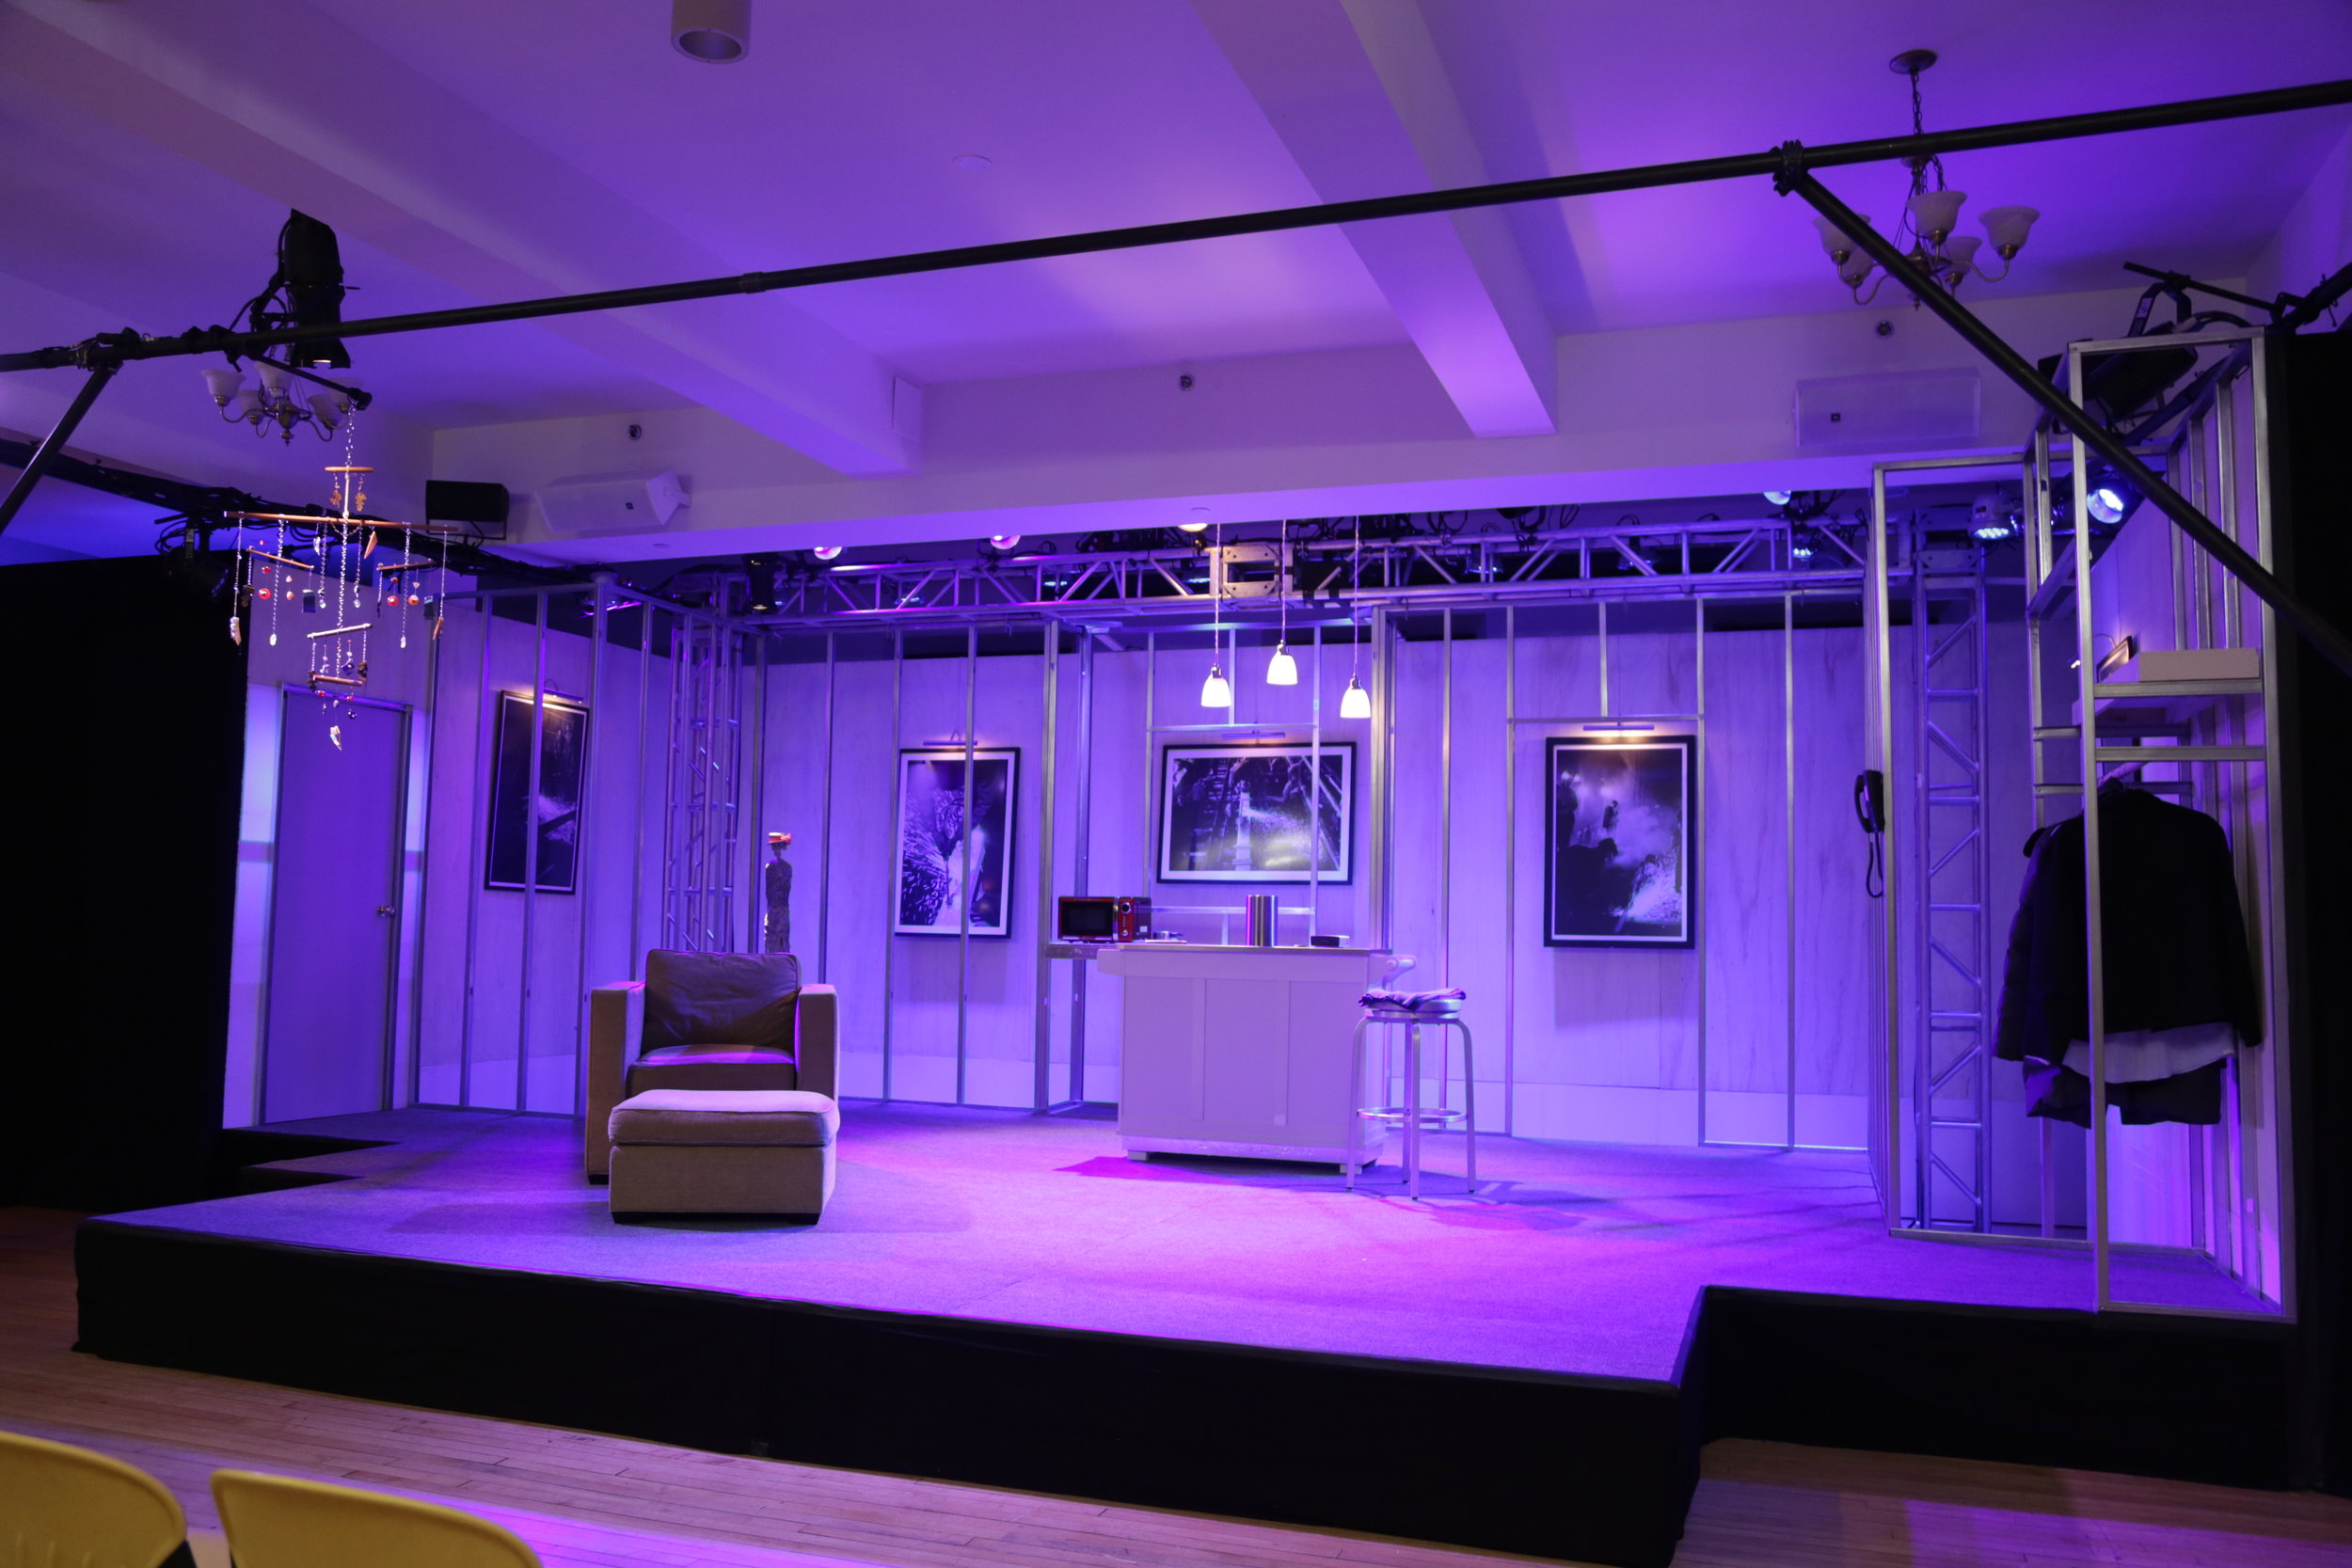 Set Design by Duane Pagano, Lighting Design by Diana Duecker (Photo by Gerry Goodstein)